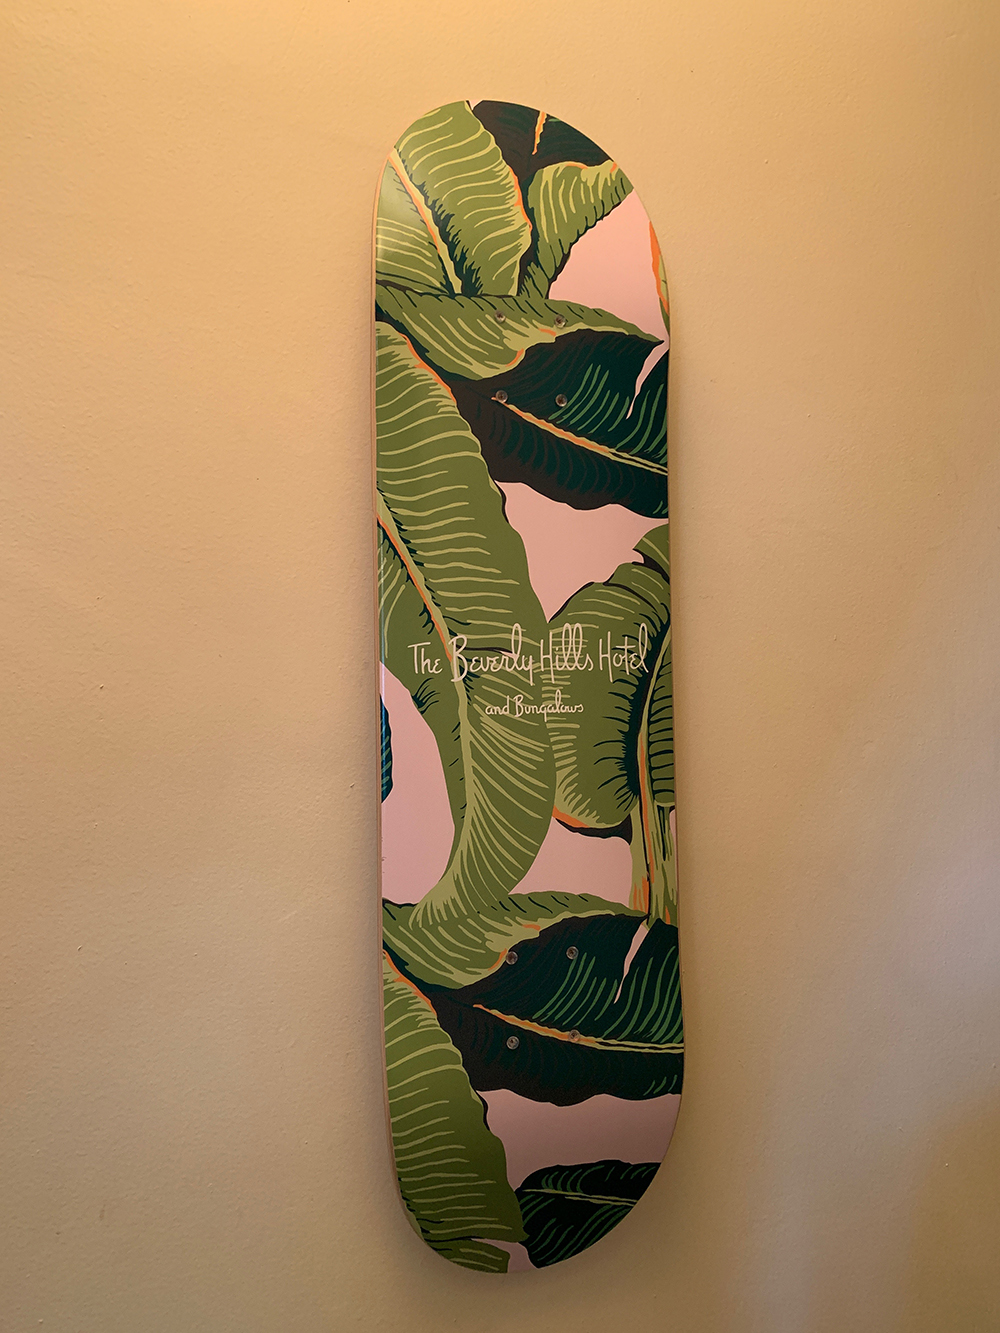 A Beverly Hills Hotel skateboard on display in the hallway.